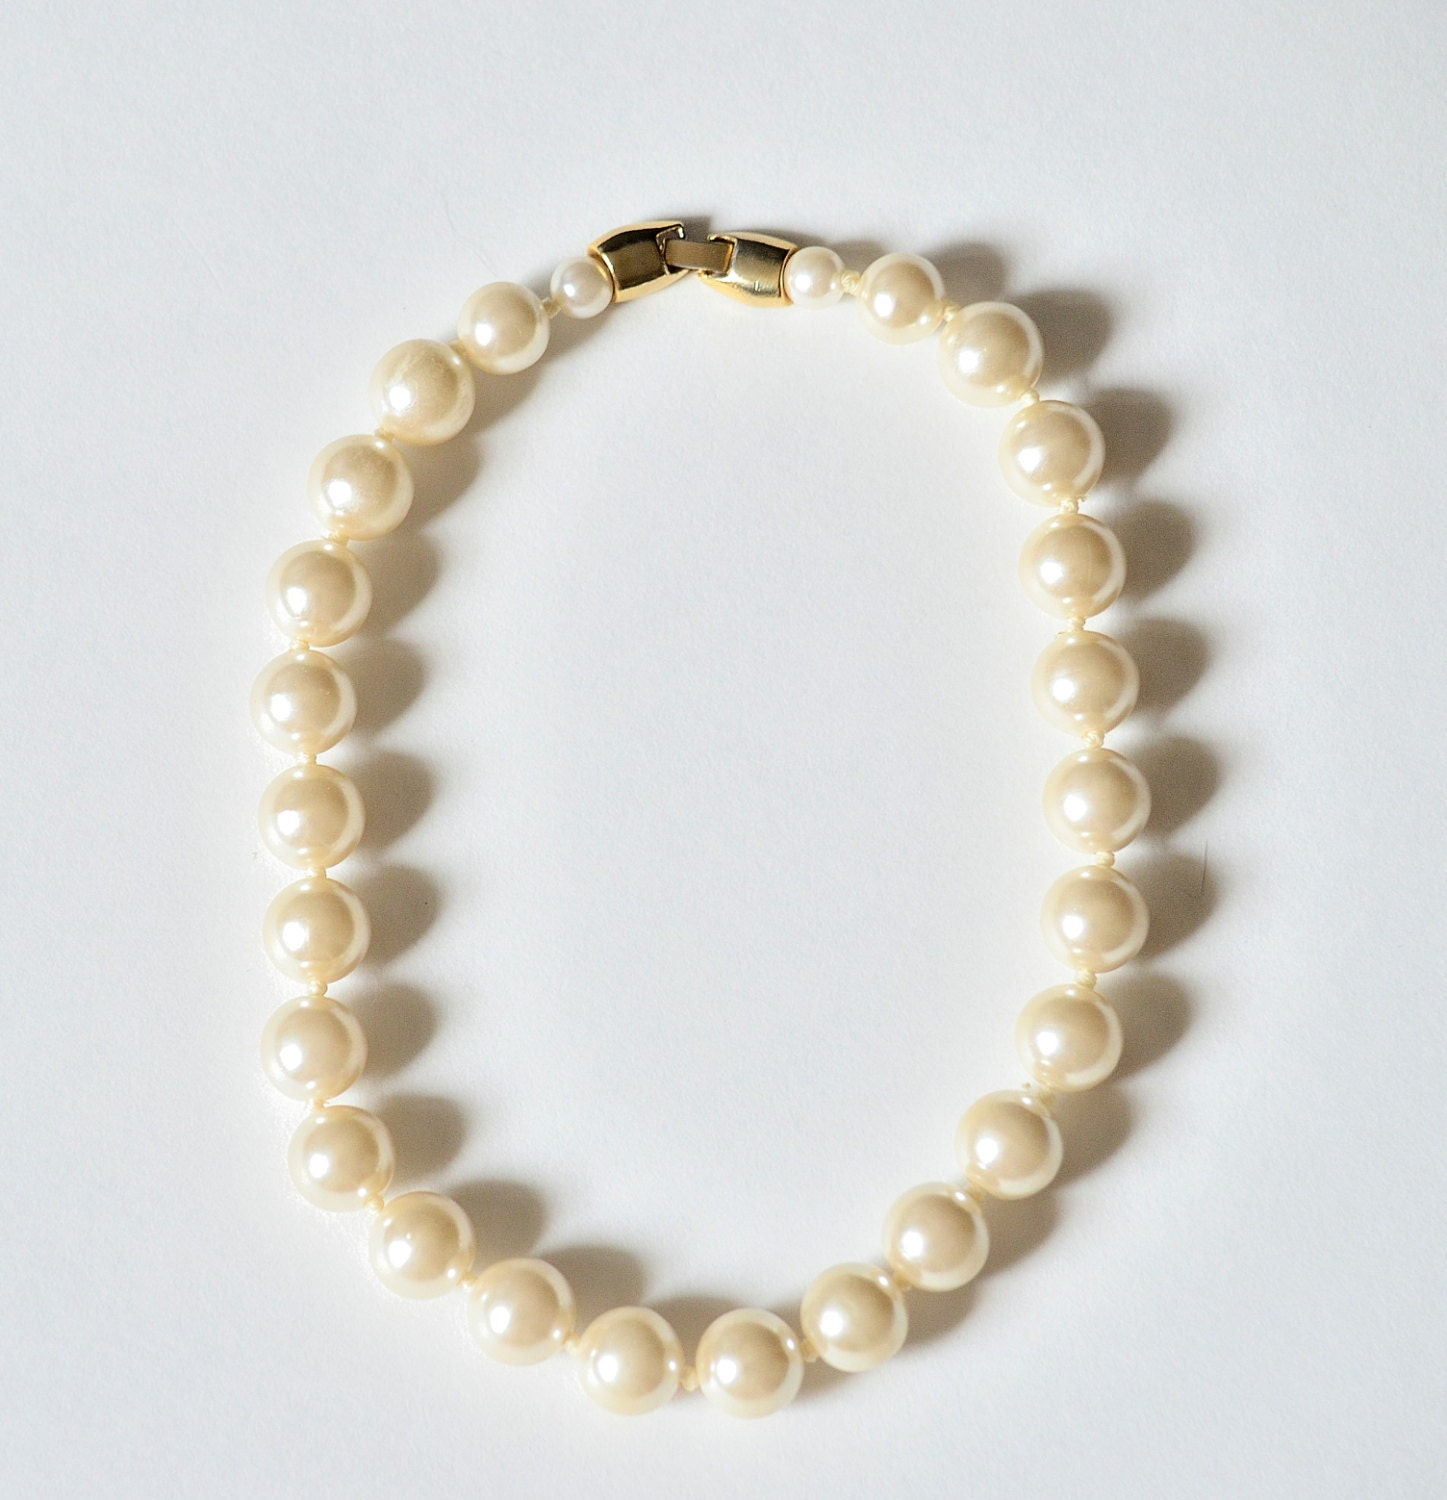 Pearl Choker Vintage Necklace. Beige Faux Pearls By